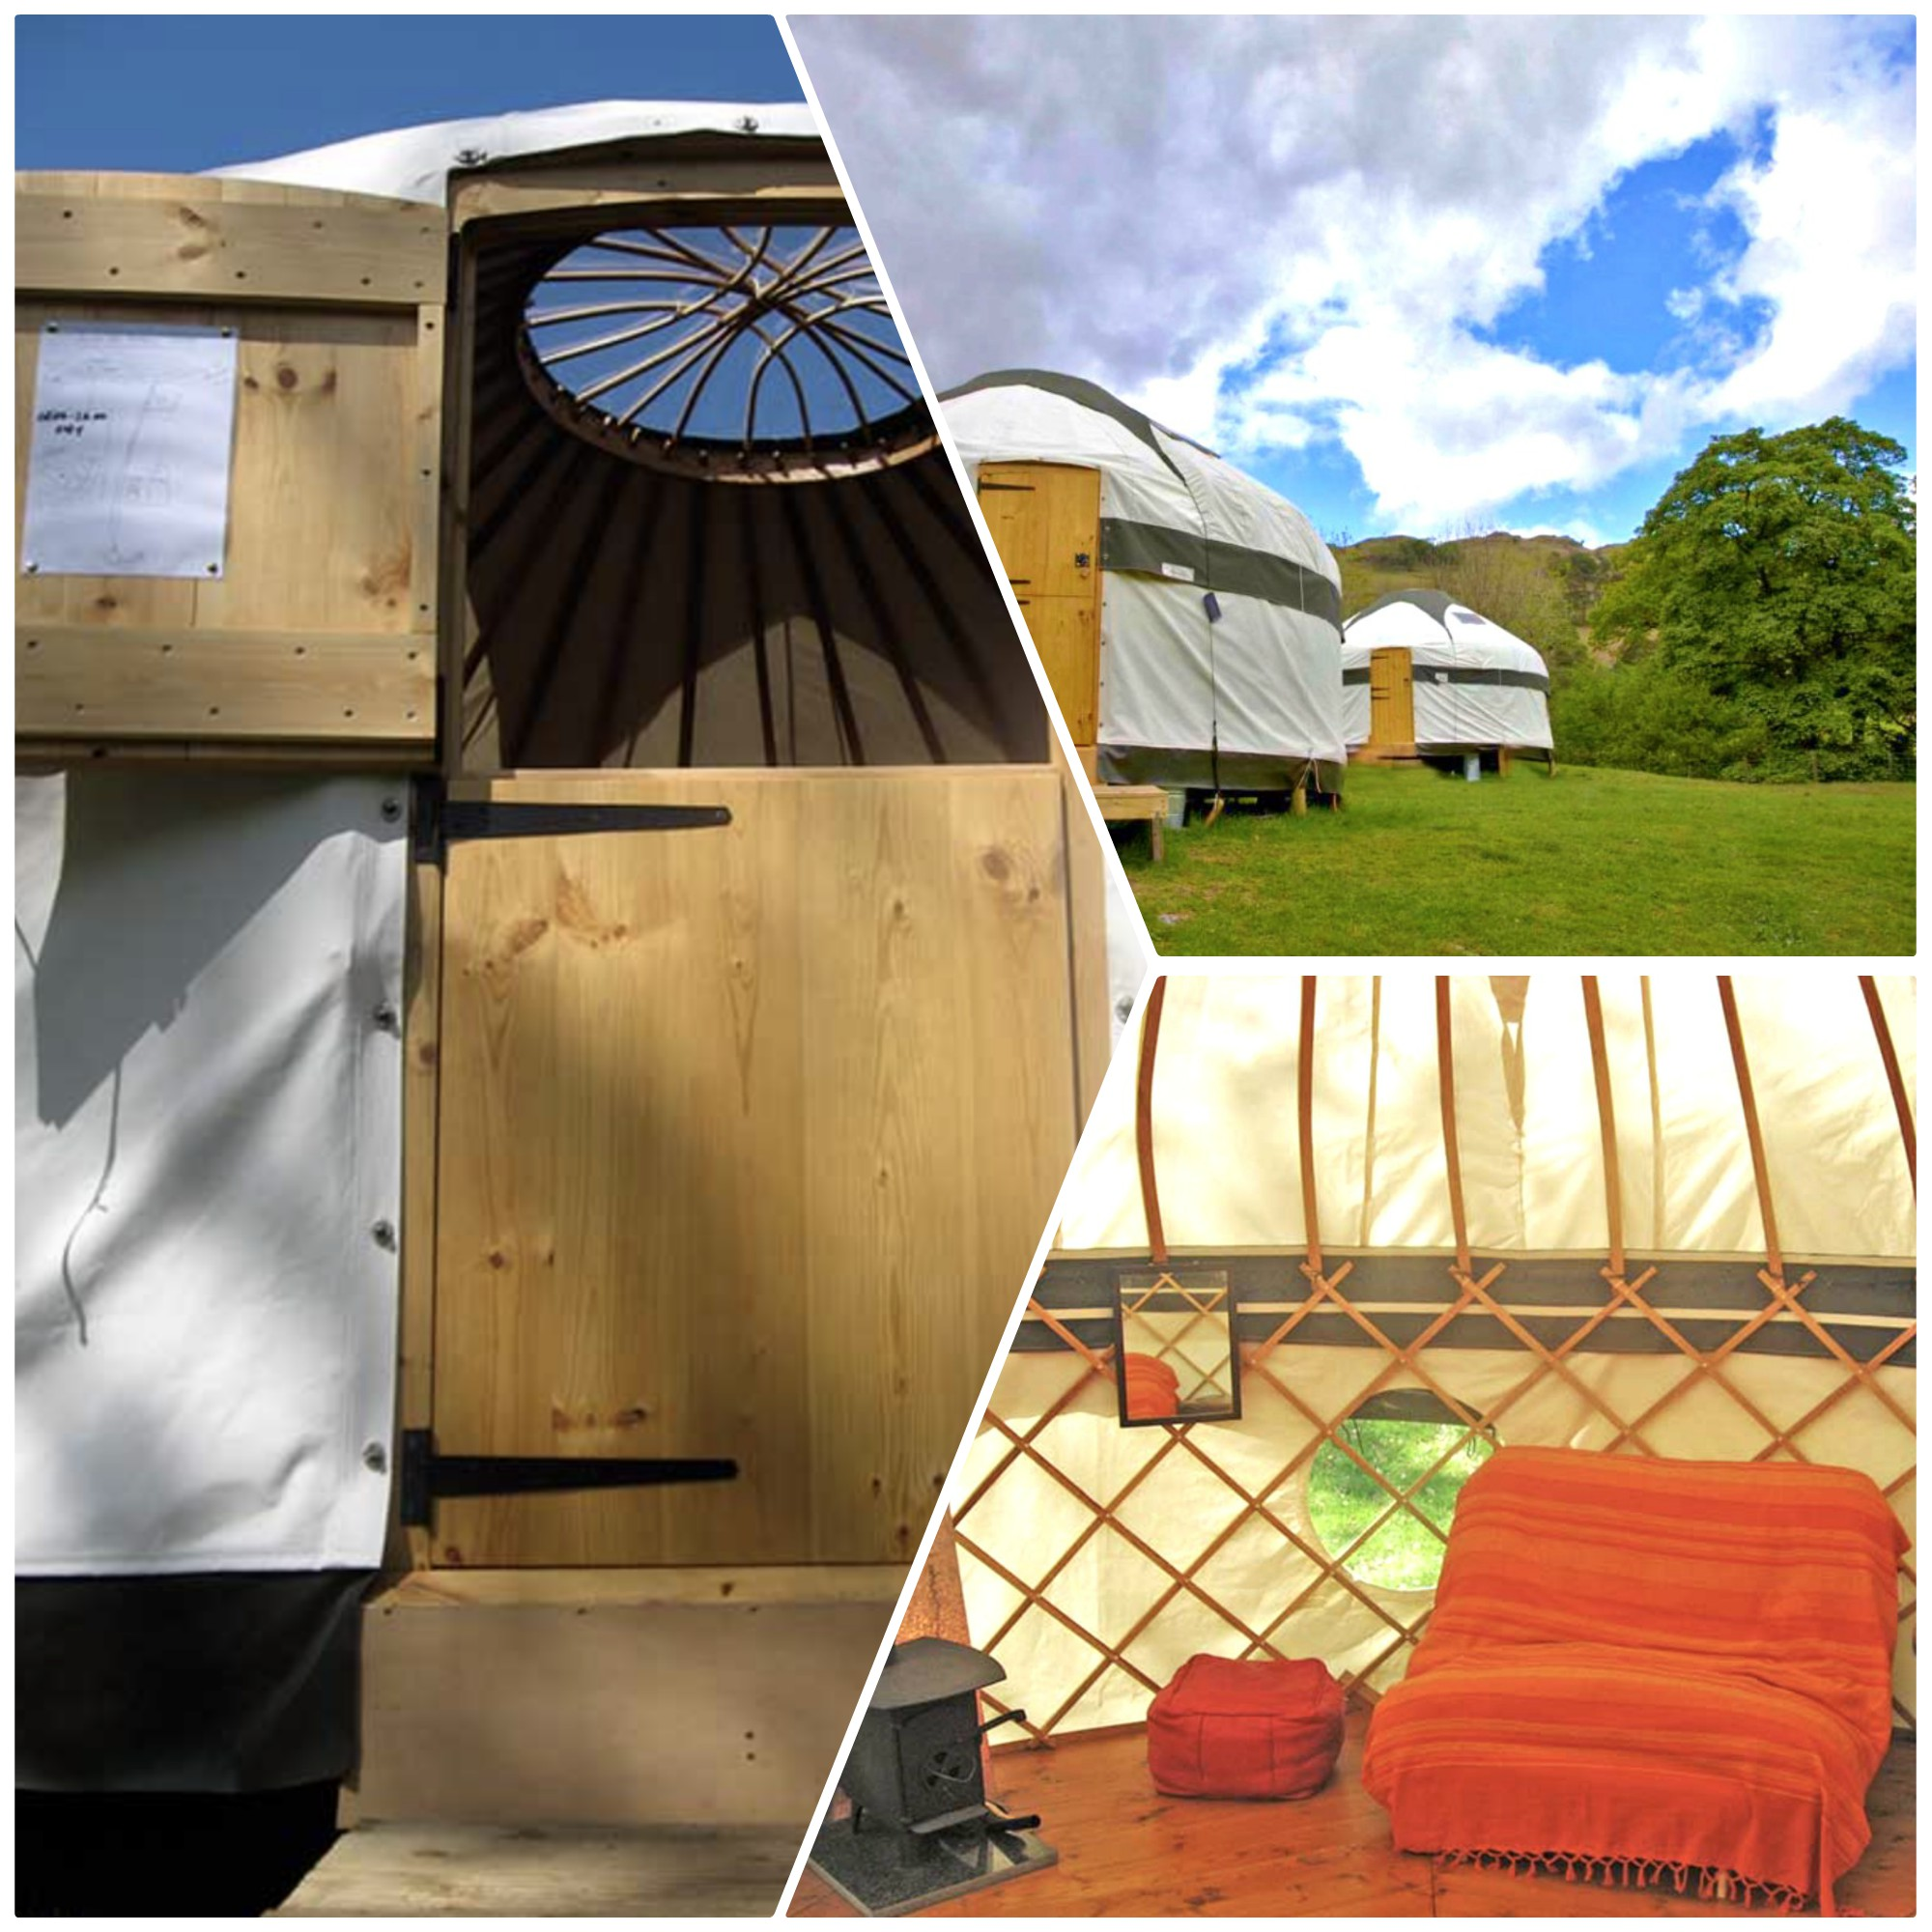 Glamping! Beautiful Yurts with glowing reviews by previous guests in the Borrowdale Valley